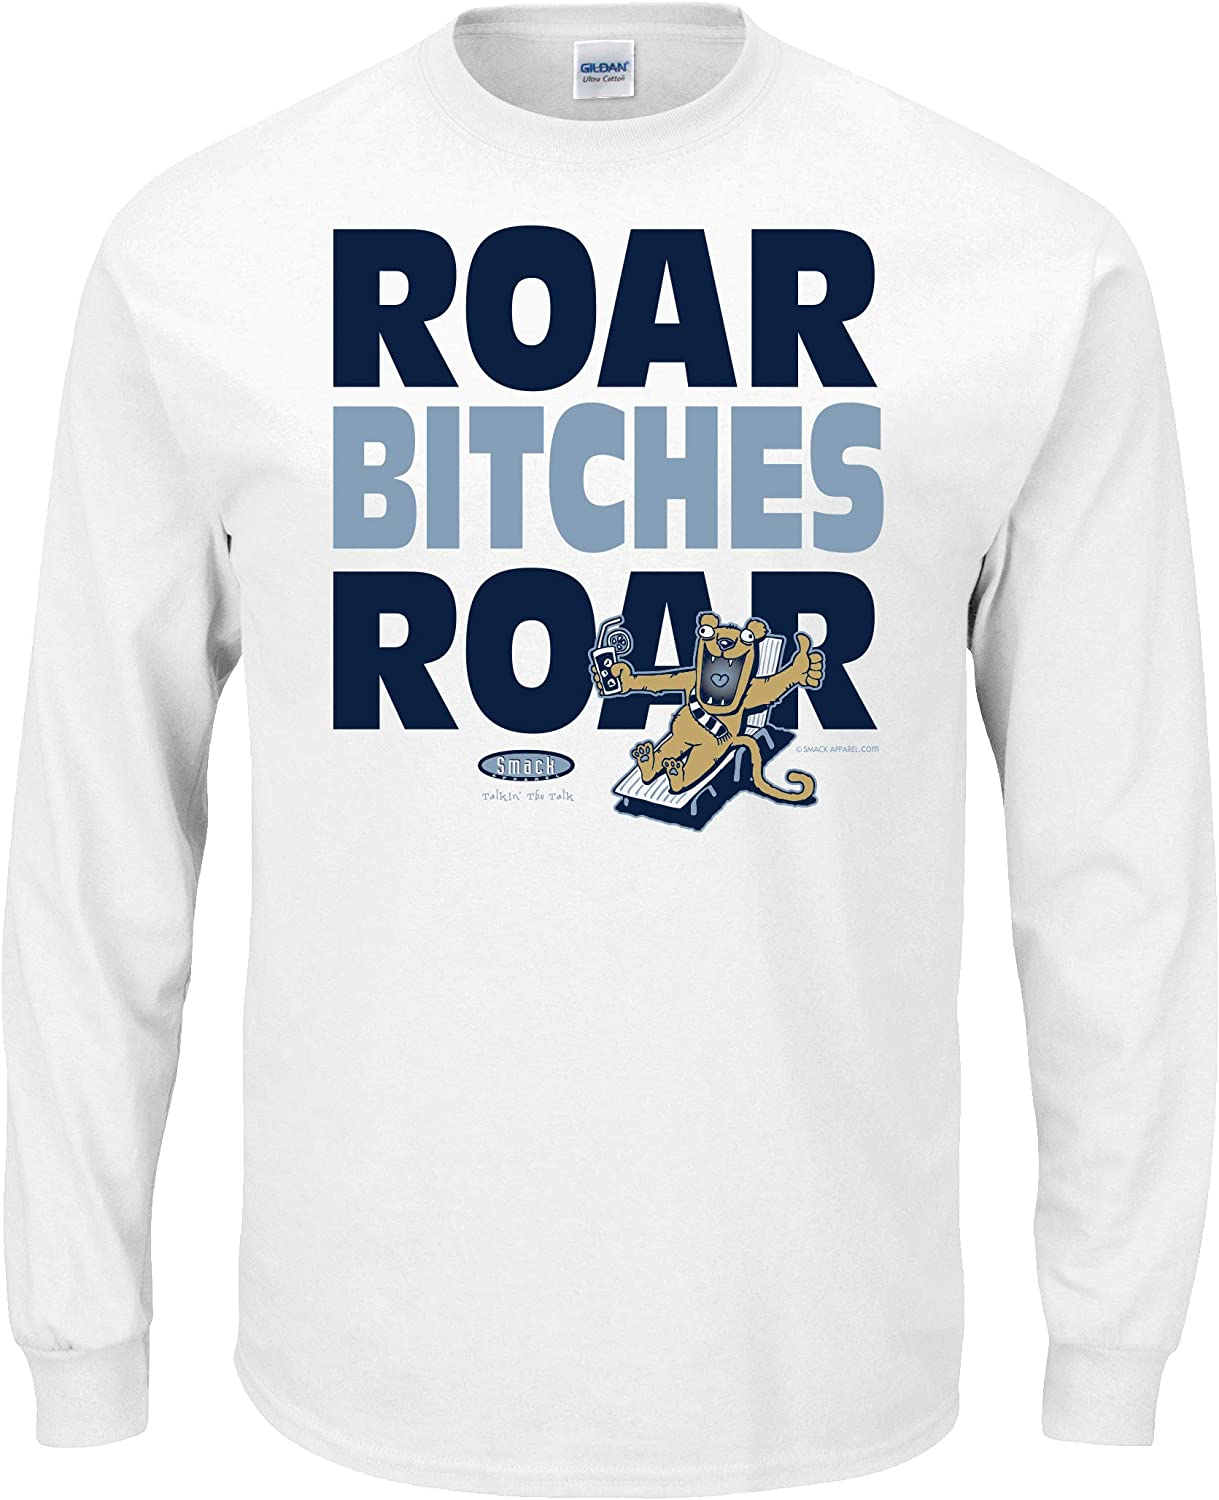 Roar Bitches Roar White T-Shirt Smack Apparel Penn State Football Fans Sm-5X